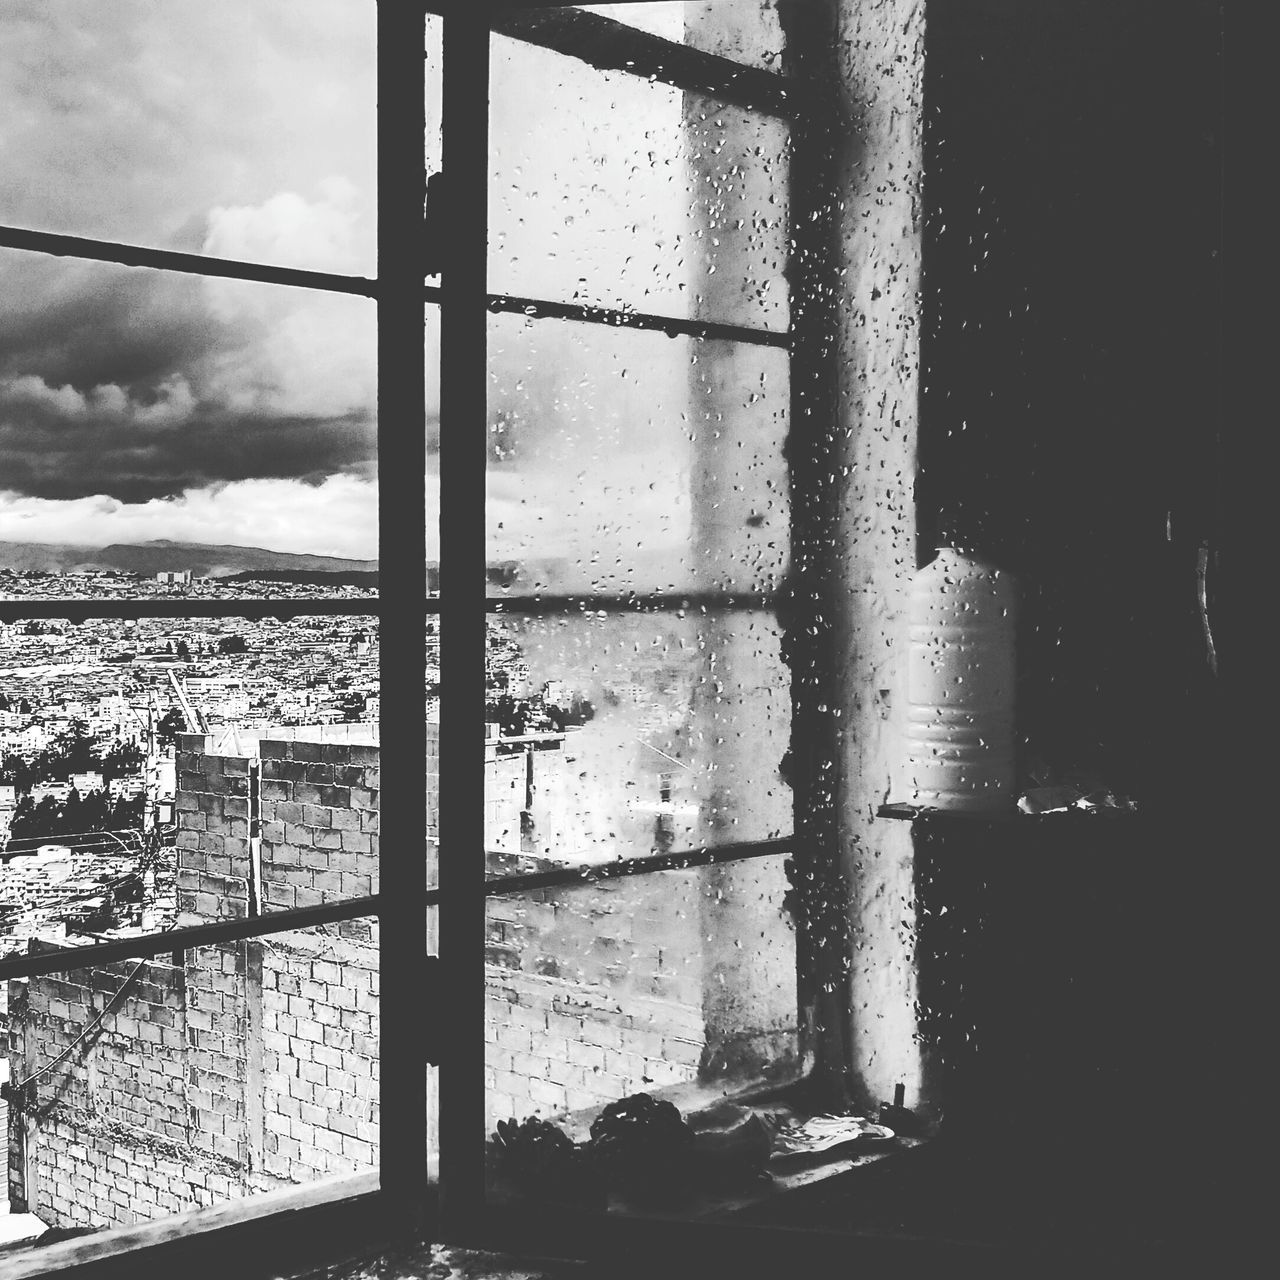 After the storm Quito Ecuador Amalavida Raindrops Rainy Day Rain Storm Window Windowpane Black And White Black & White Black And White Photography Hello World Aftertherain Afterthestorm  Cloudy Clouds And Sky Sky View View From The Window Homeawayfromhome Storm Cloud Mirador Emotive Outlook